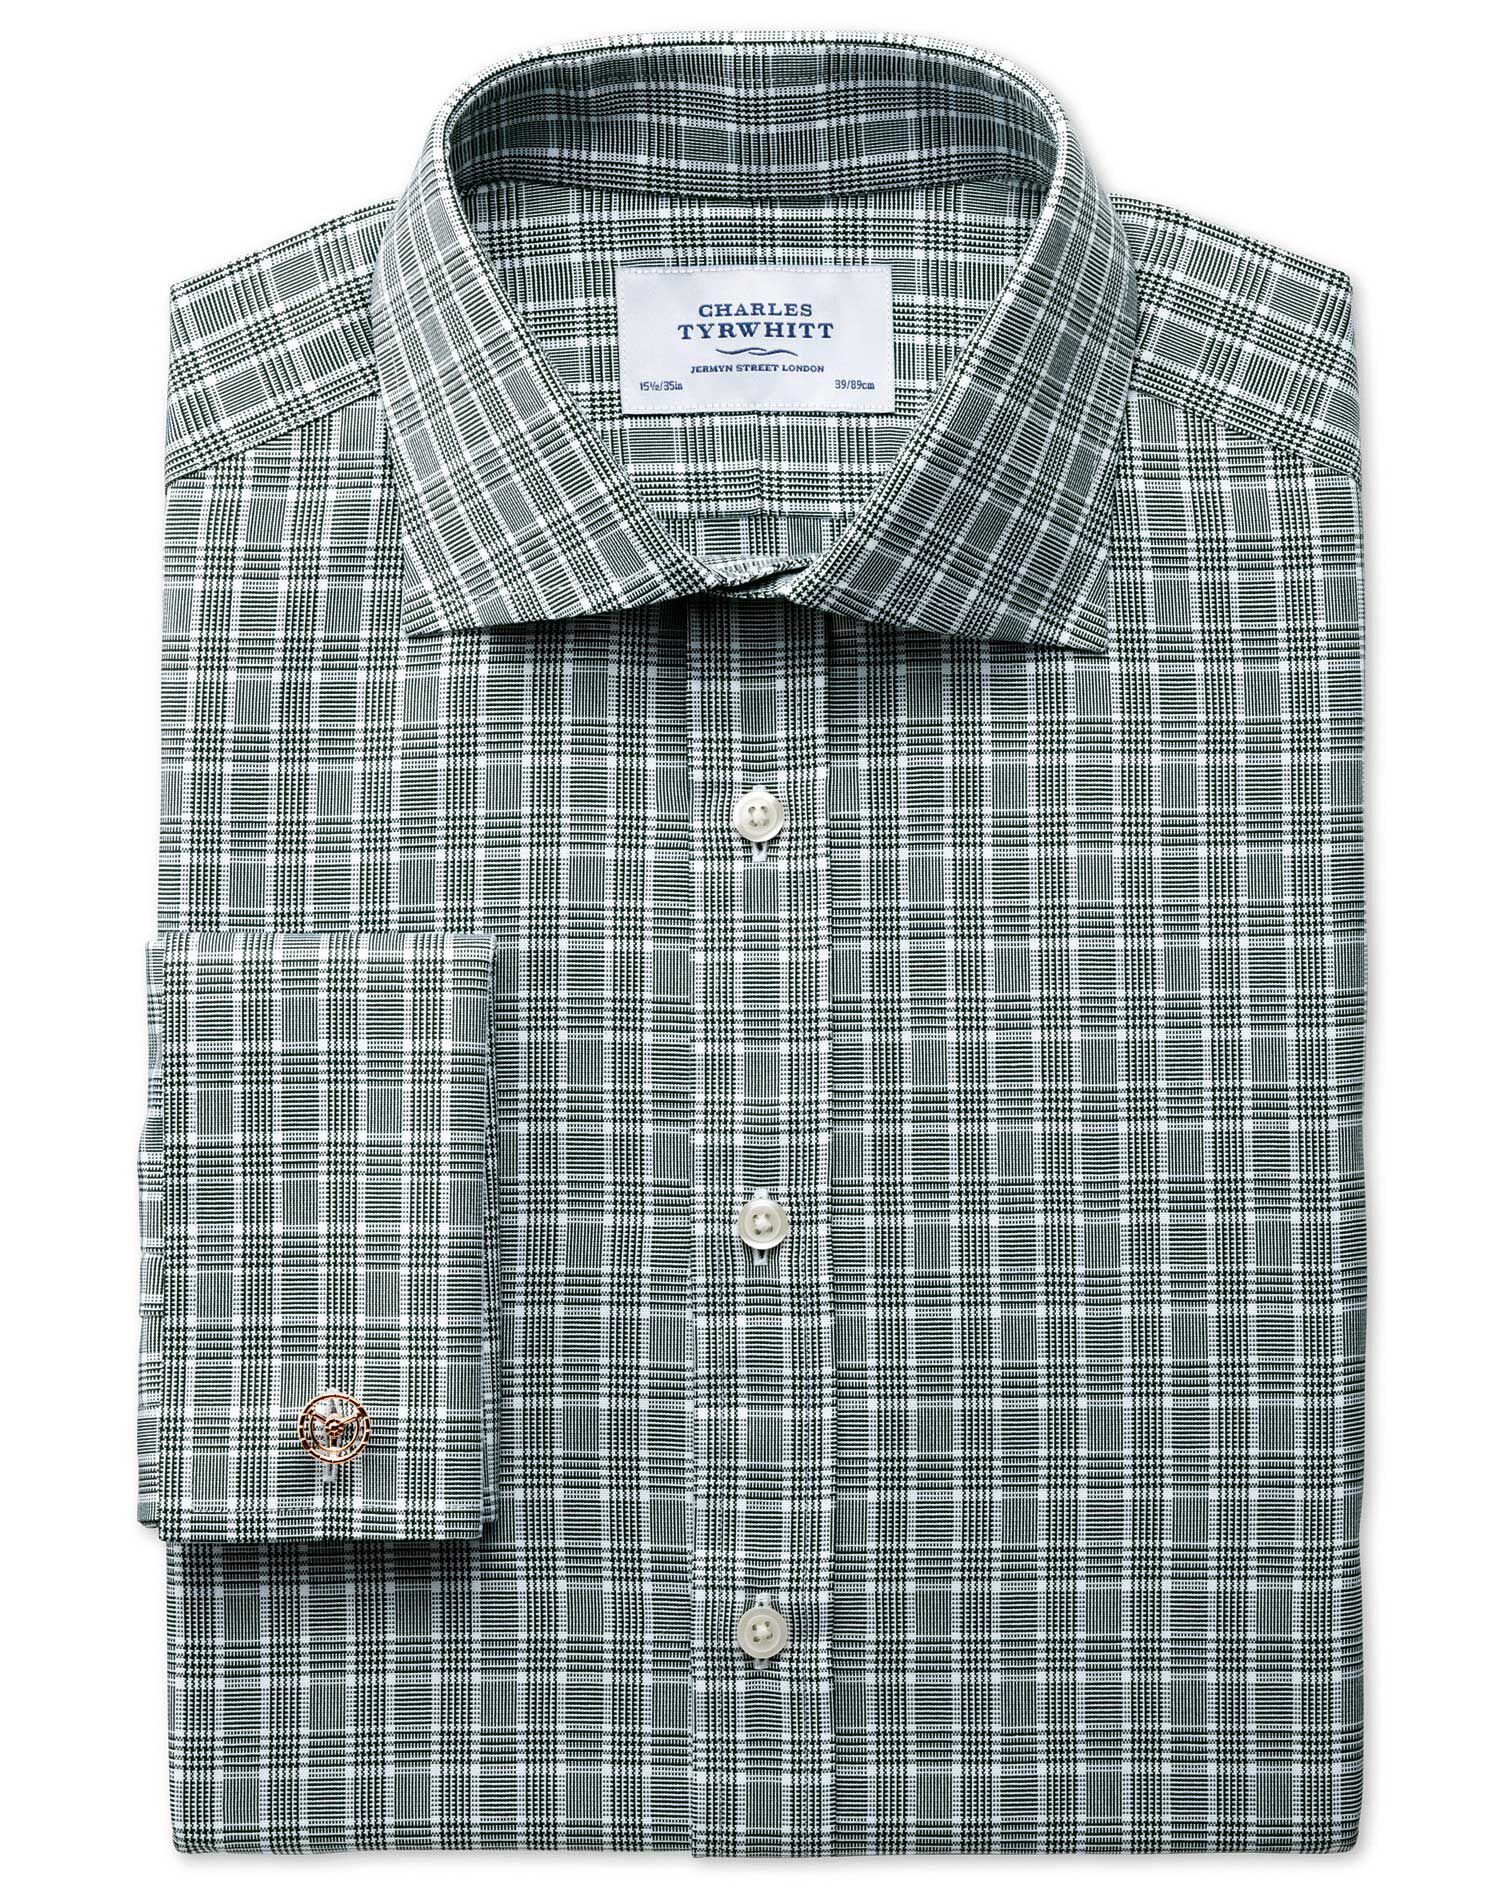 Slim Fit Prince Of Wales Green Cotton Formal Shirt Double Cuff Size 17/38 by Charles Tyrwhitt